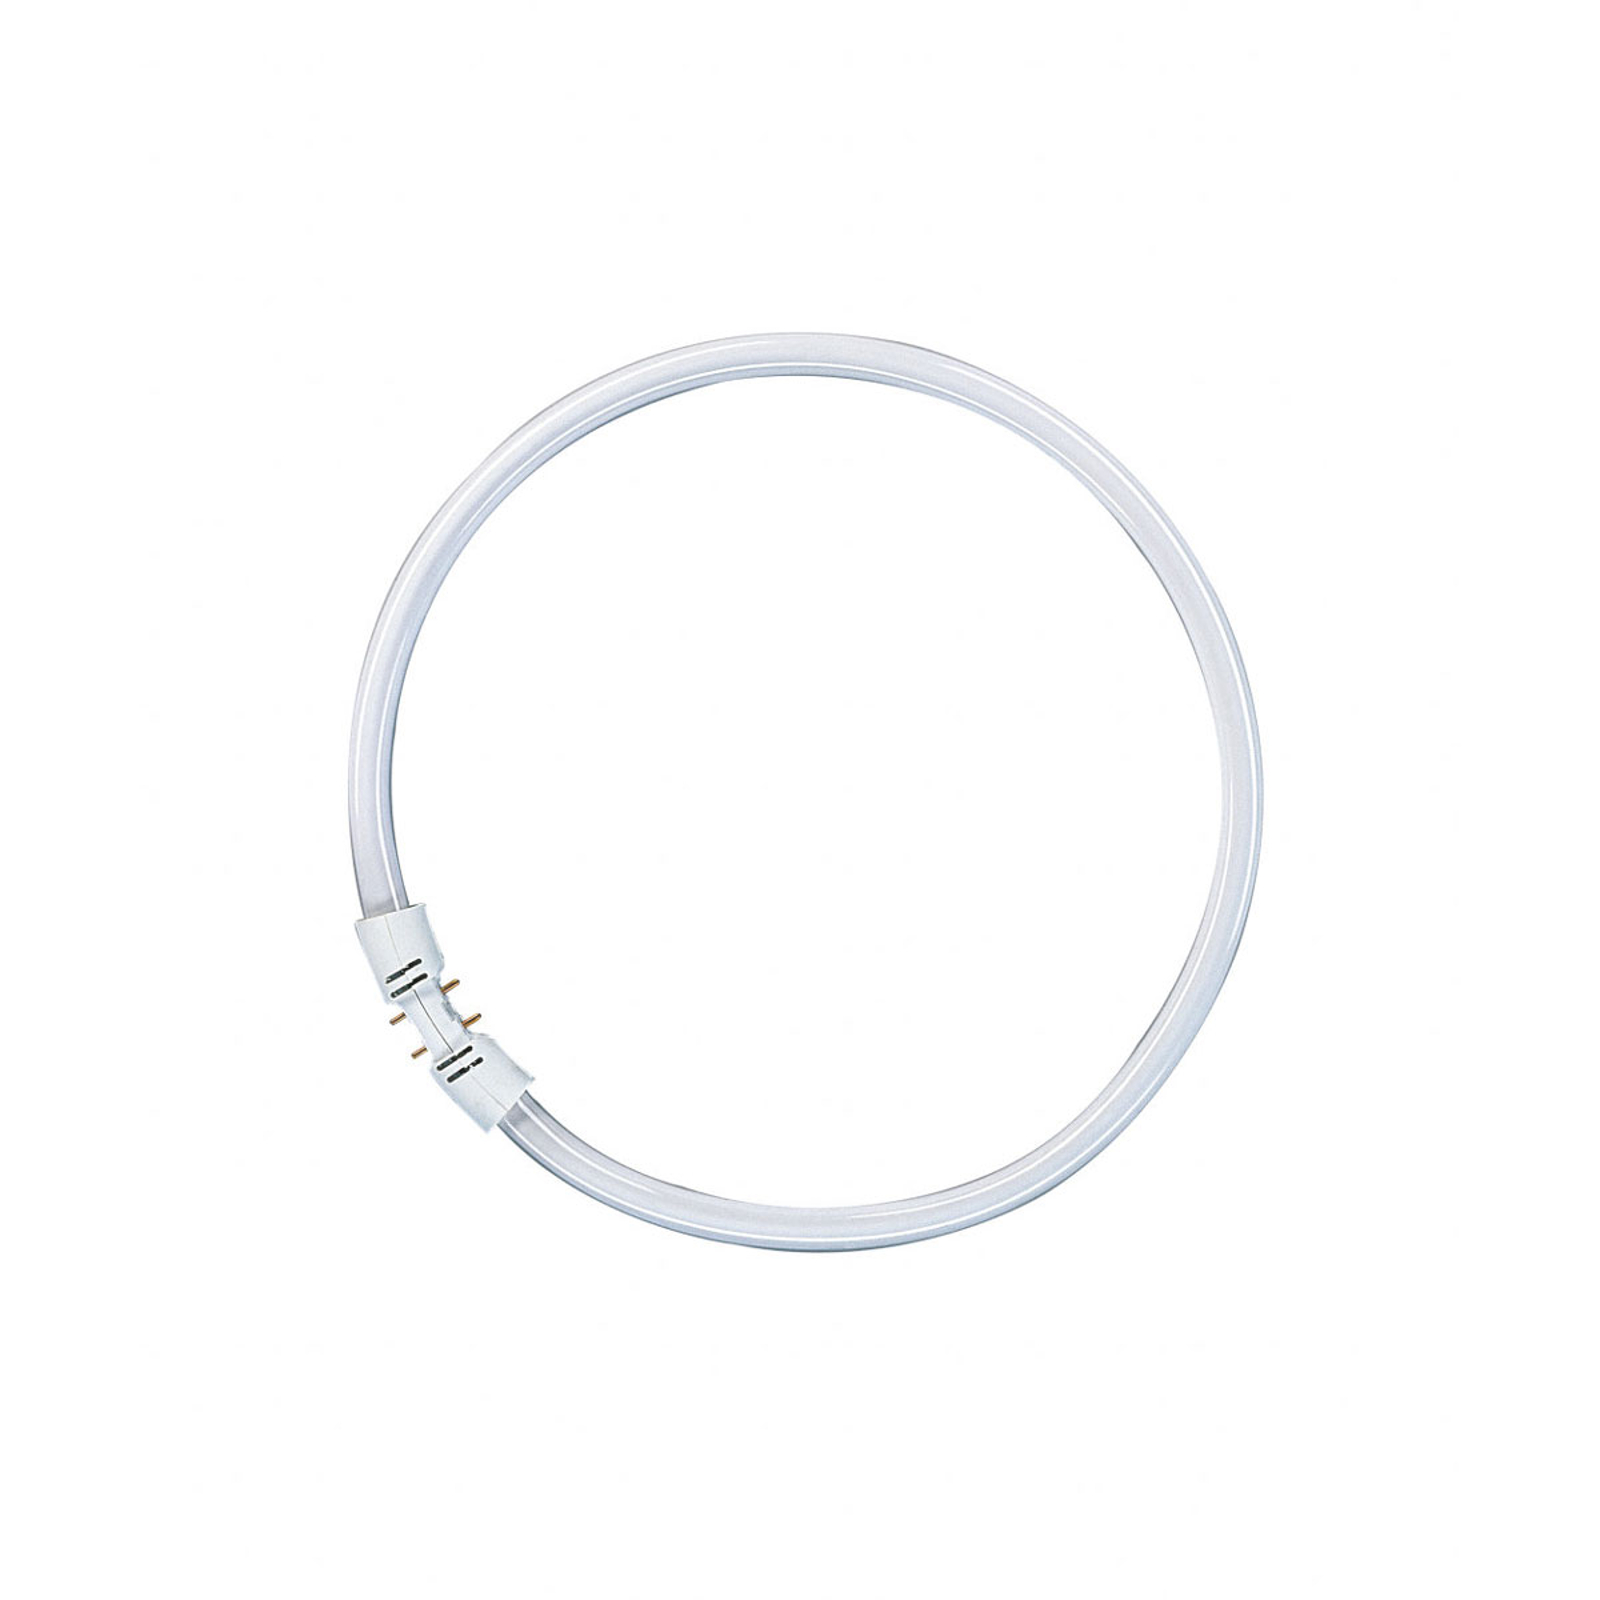 2Gx13 LUMILUX T5 Ring-Leuchtstofflampe 40W 830